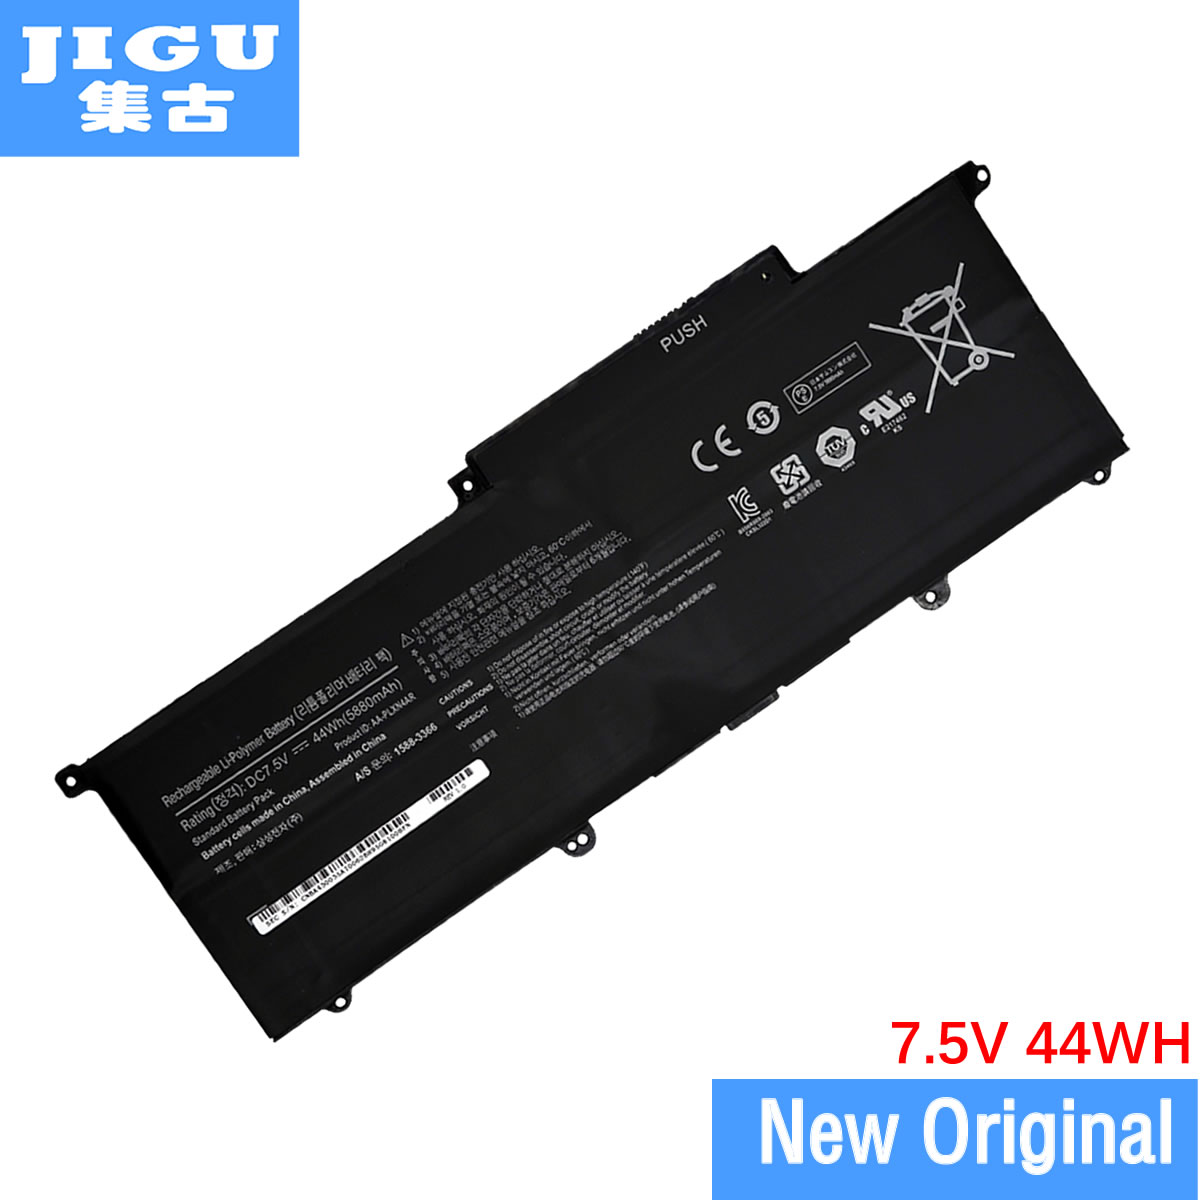 JIGU AA-PLXN4AR Original Laptop Battery For SAMSUNG Ultrabook 900X3C 900X3D 900X3E NP900X3C NP900X3D NP900X3E 7.5V 44WH new for samsung np900x3b np900x3c np900x3d np900x3e 900x3b 900x3c 900x3d 900x3e keyboard backlit portugal no frame big enter